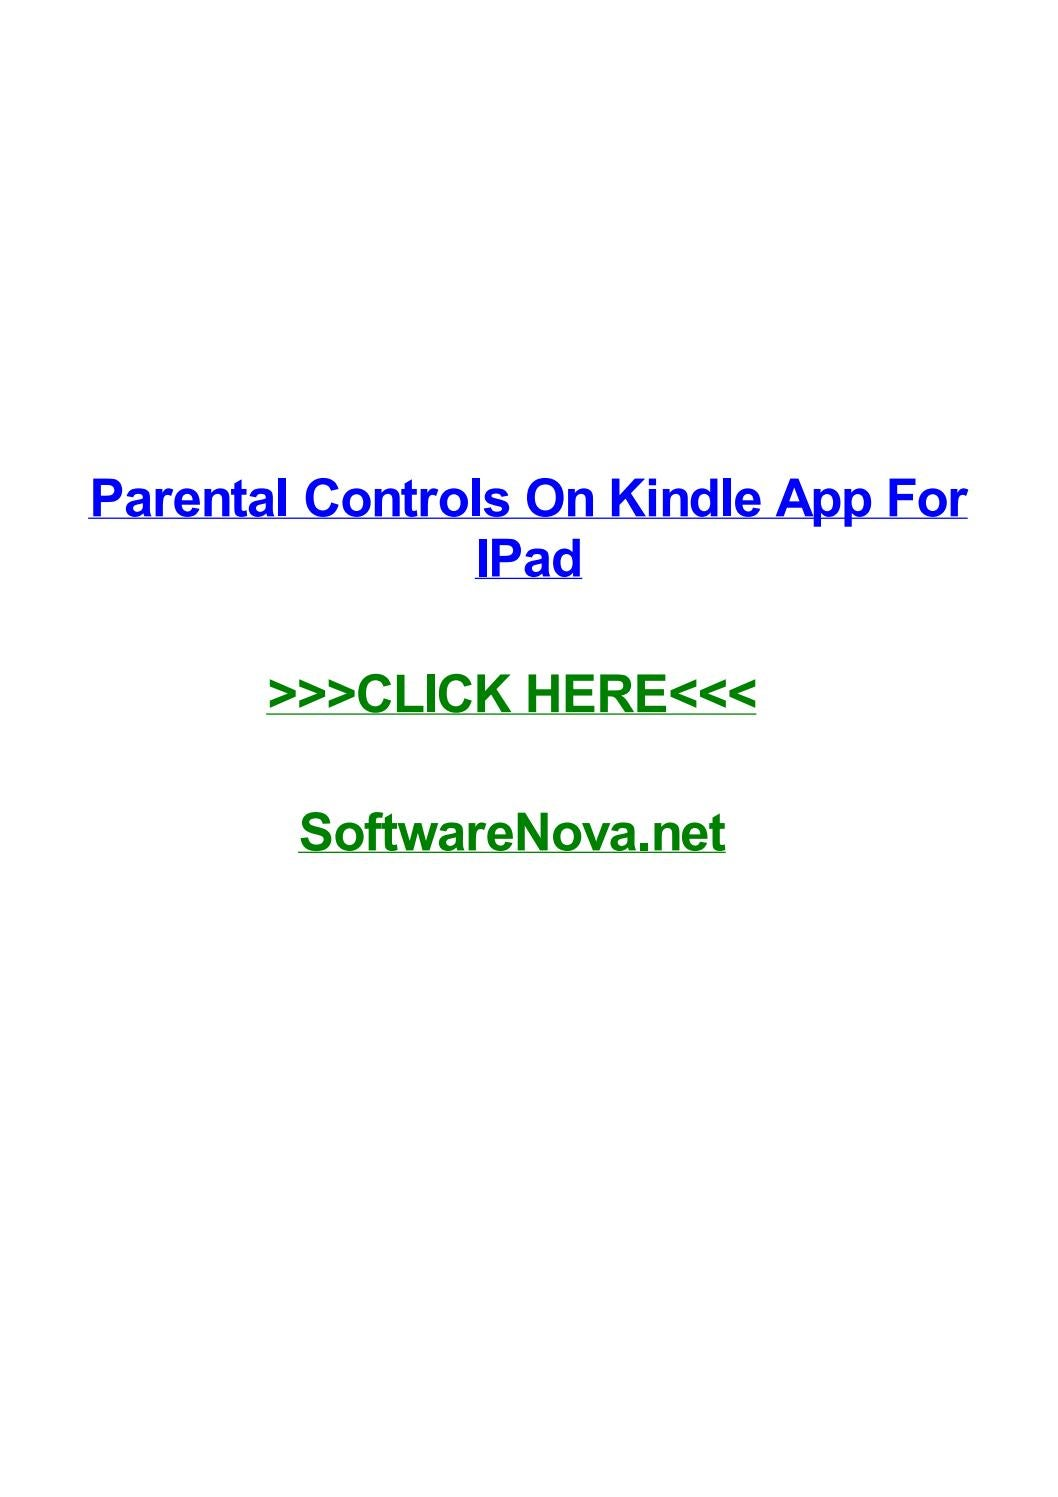 Parental controls on kindle app for ipad by ericgylw - issuu